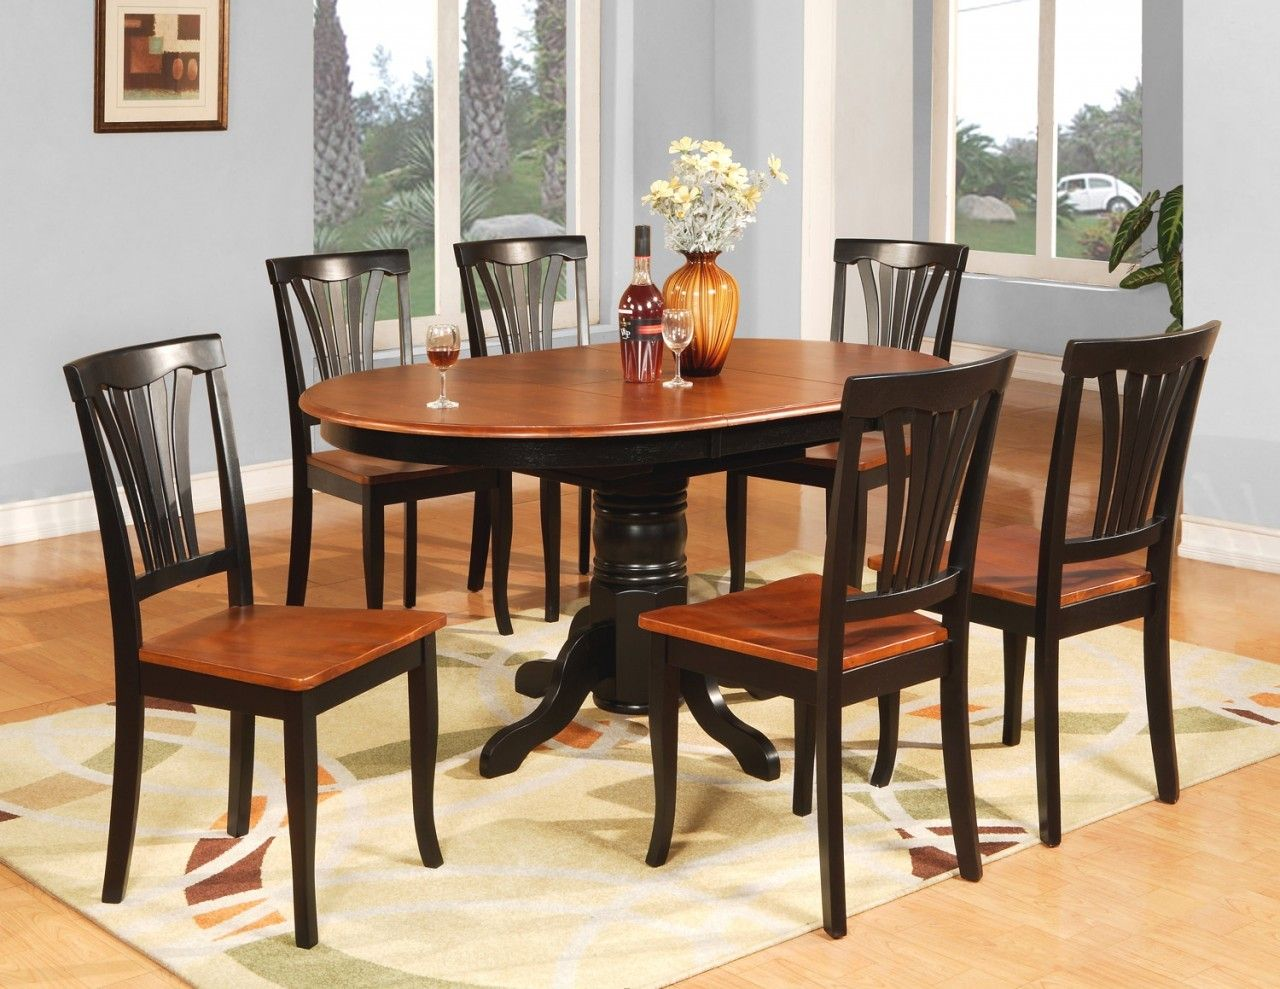 2 tone oval dining tables and chairs avon 5pc oval for 2 tone dining room sets